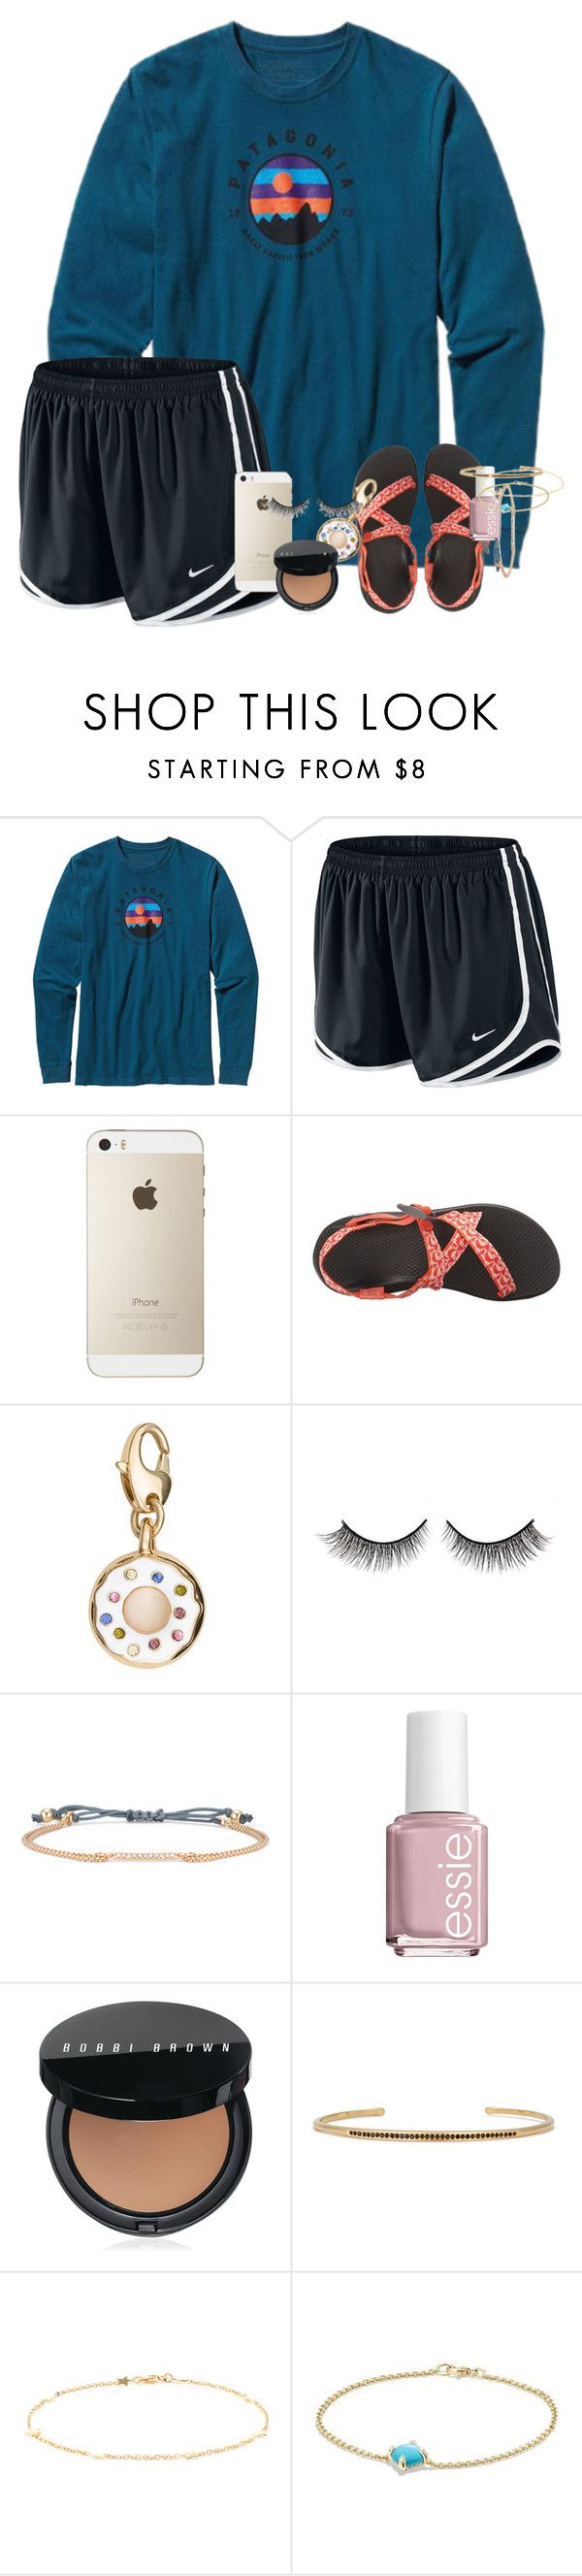 """""""Did some on-line shopping today """" by erinlmarkel ❤ liked on Polyvore featuring Patagonia, NIKE, Chaco, Kate Spade, Rimini, Stella & Dot, Essie, Bobbi Brown Cosmetics, Luis Miguel Howard and David Yurman"""